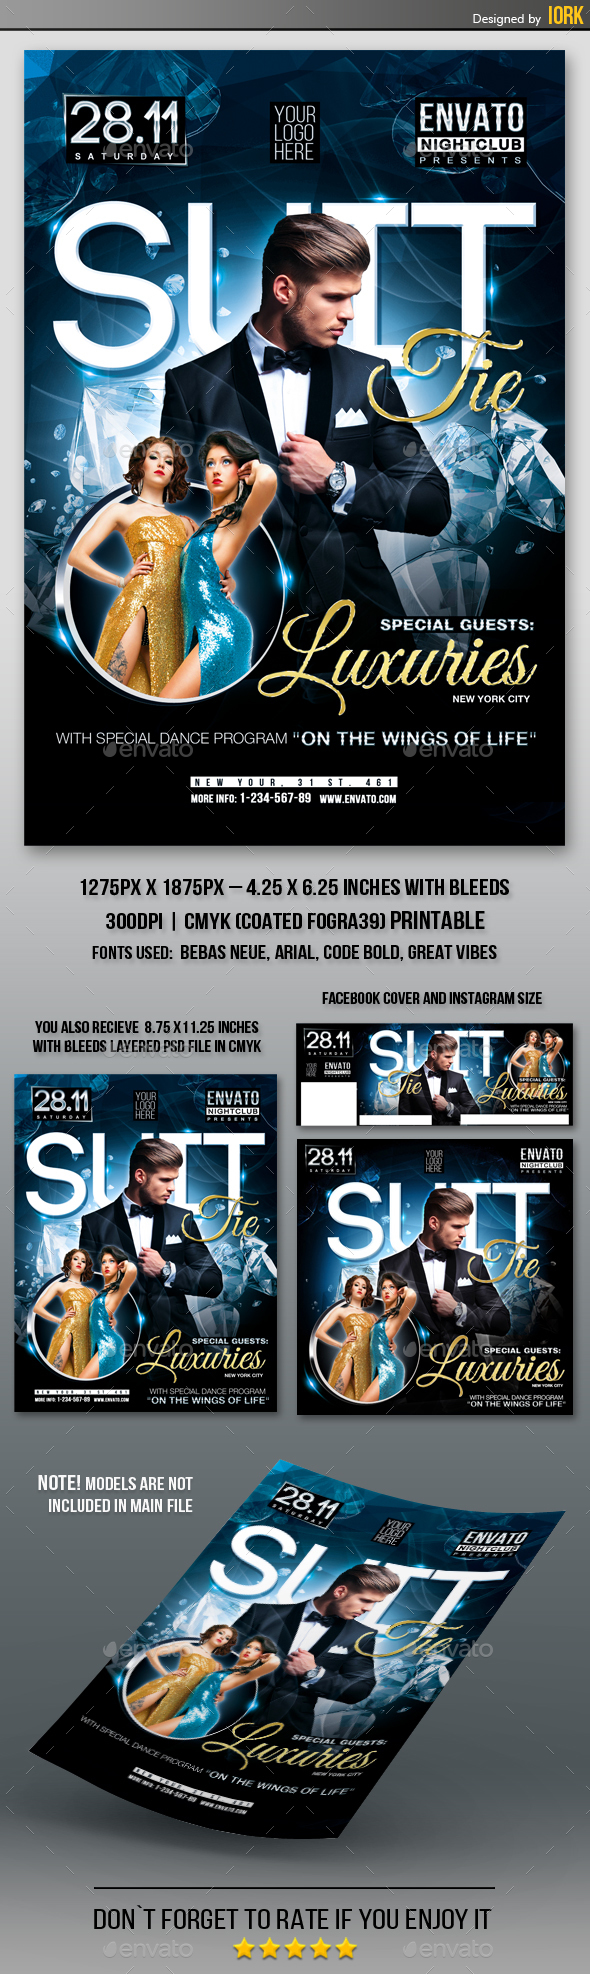 Suit and Tie Party with Special Guest Flyer - Clubs & Parties Events